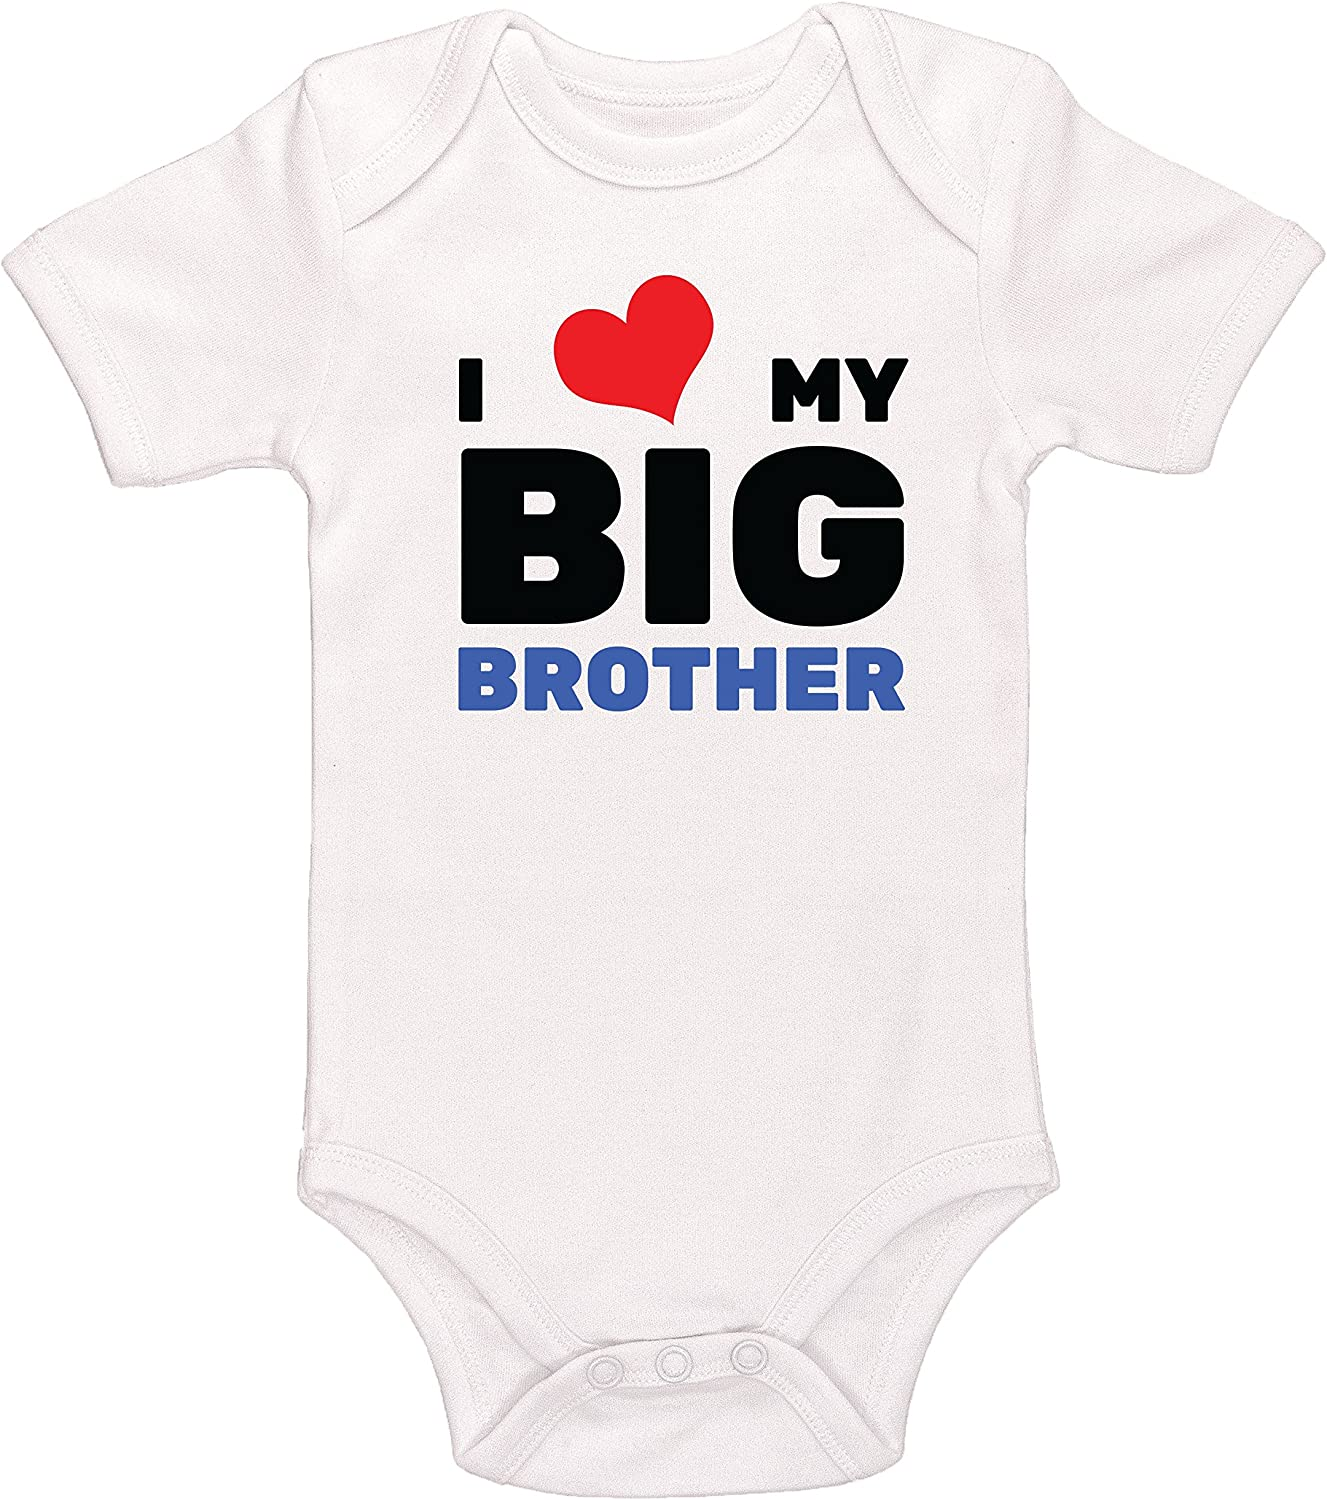 I Love My Brother This Much Beautiful Personalised Baby Vests Bodysuits Unisex